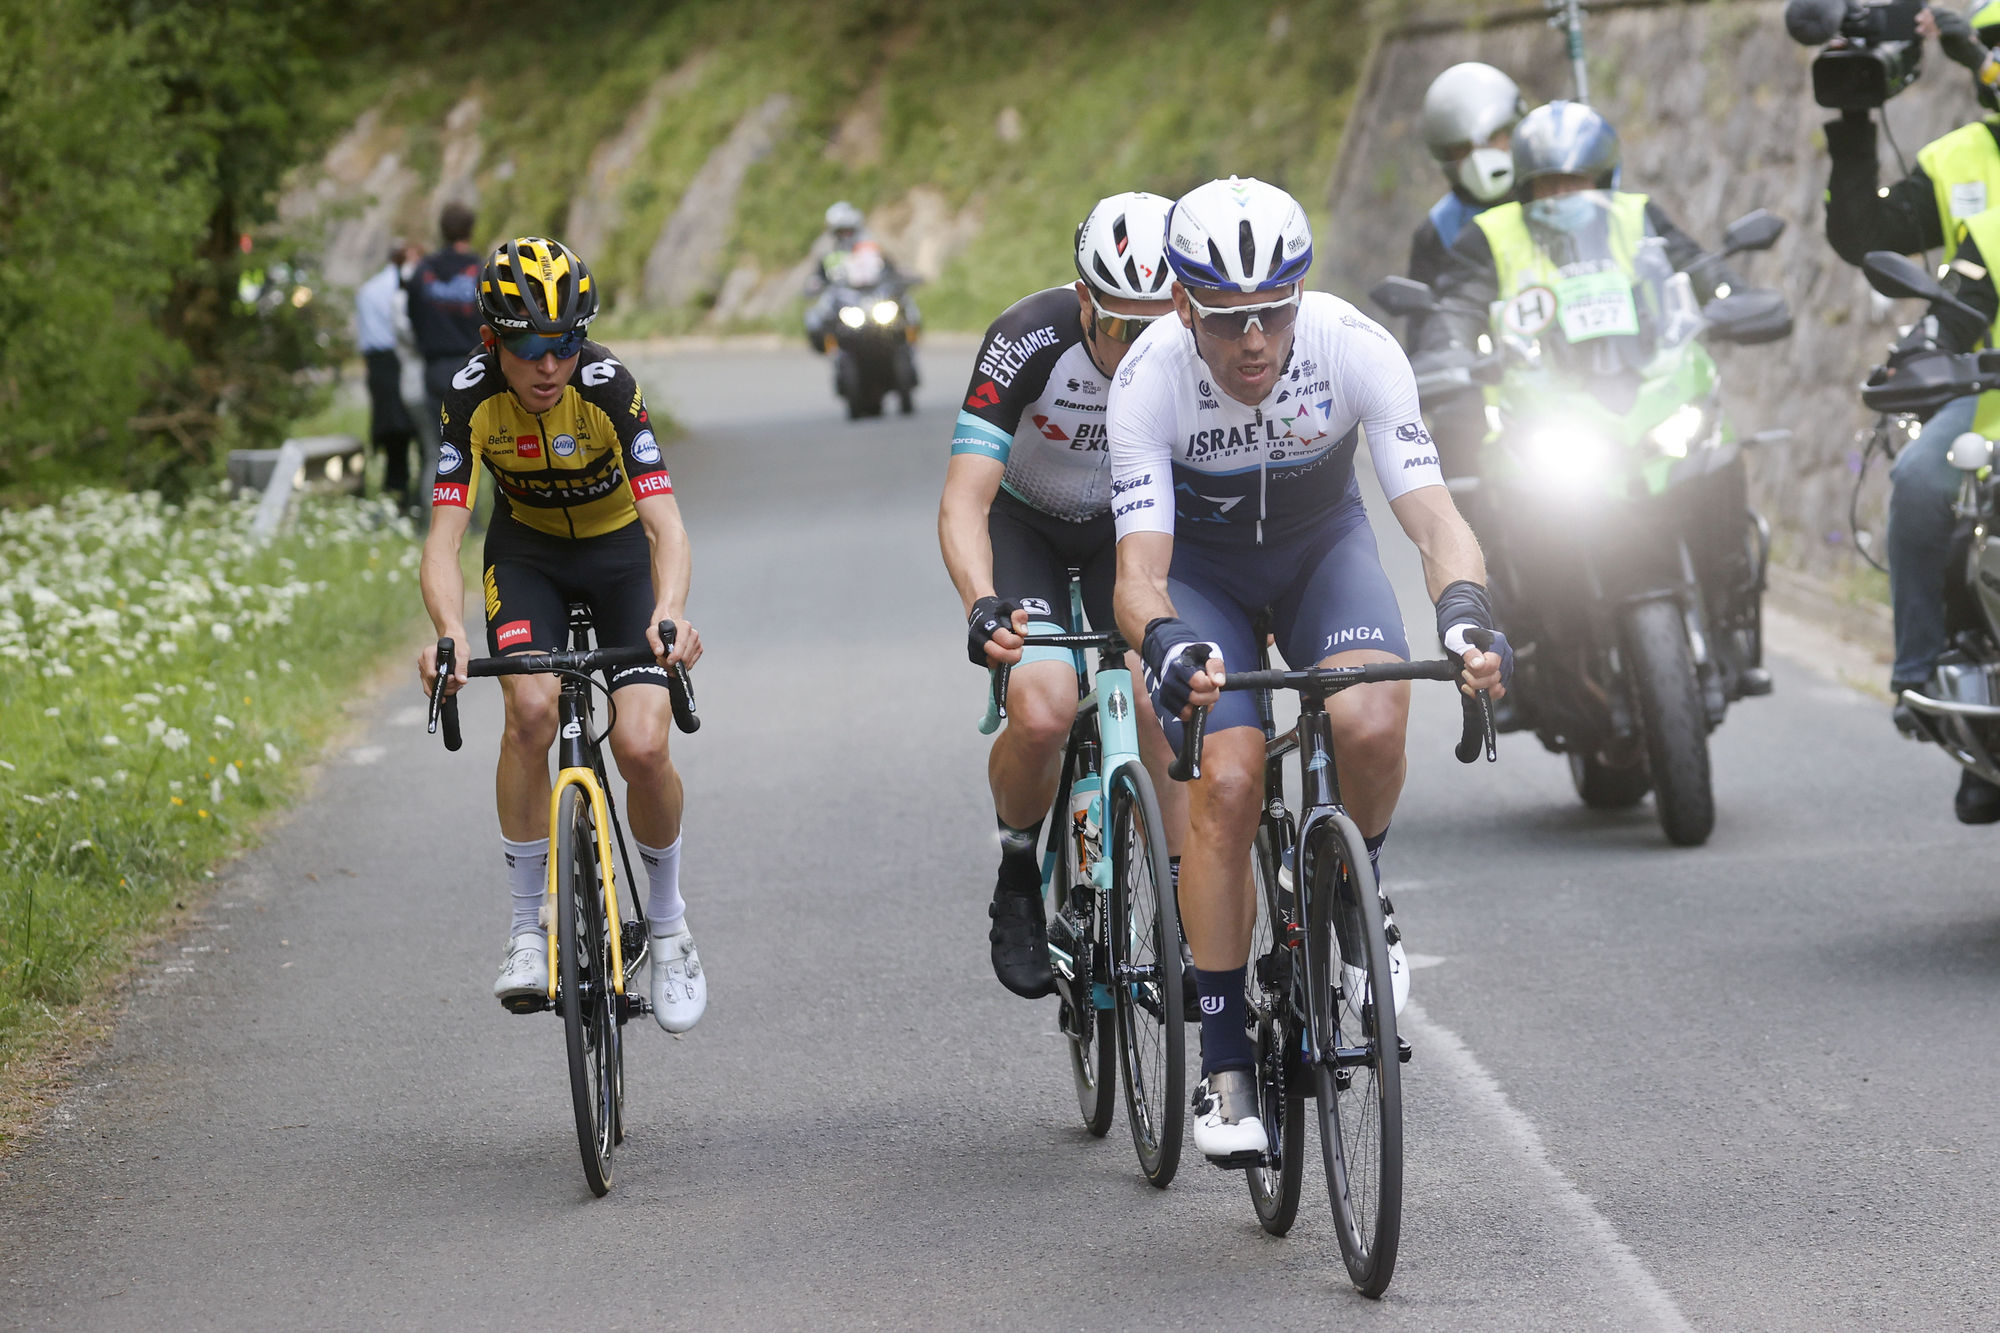 TO THE FINISH IN THE BASQUE COUNTRY